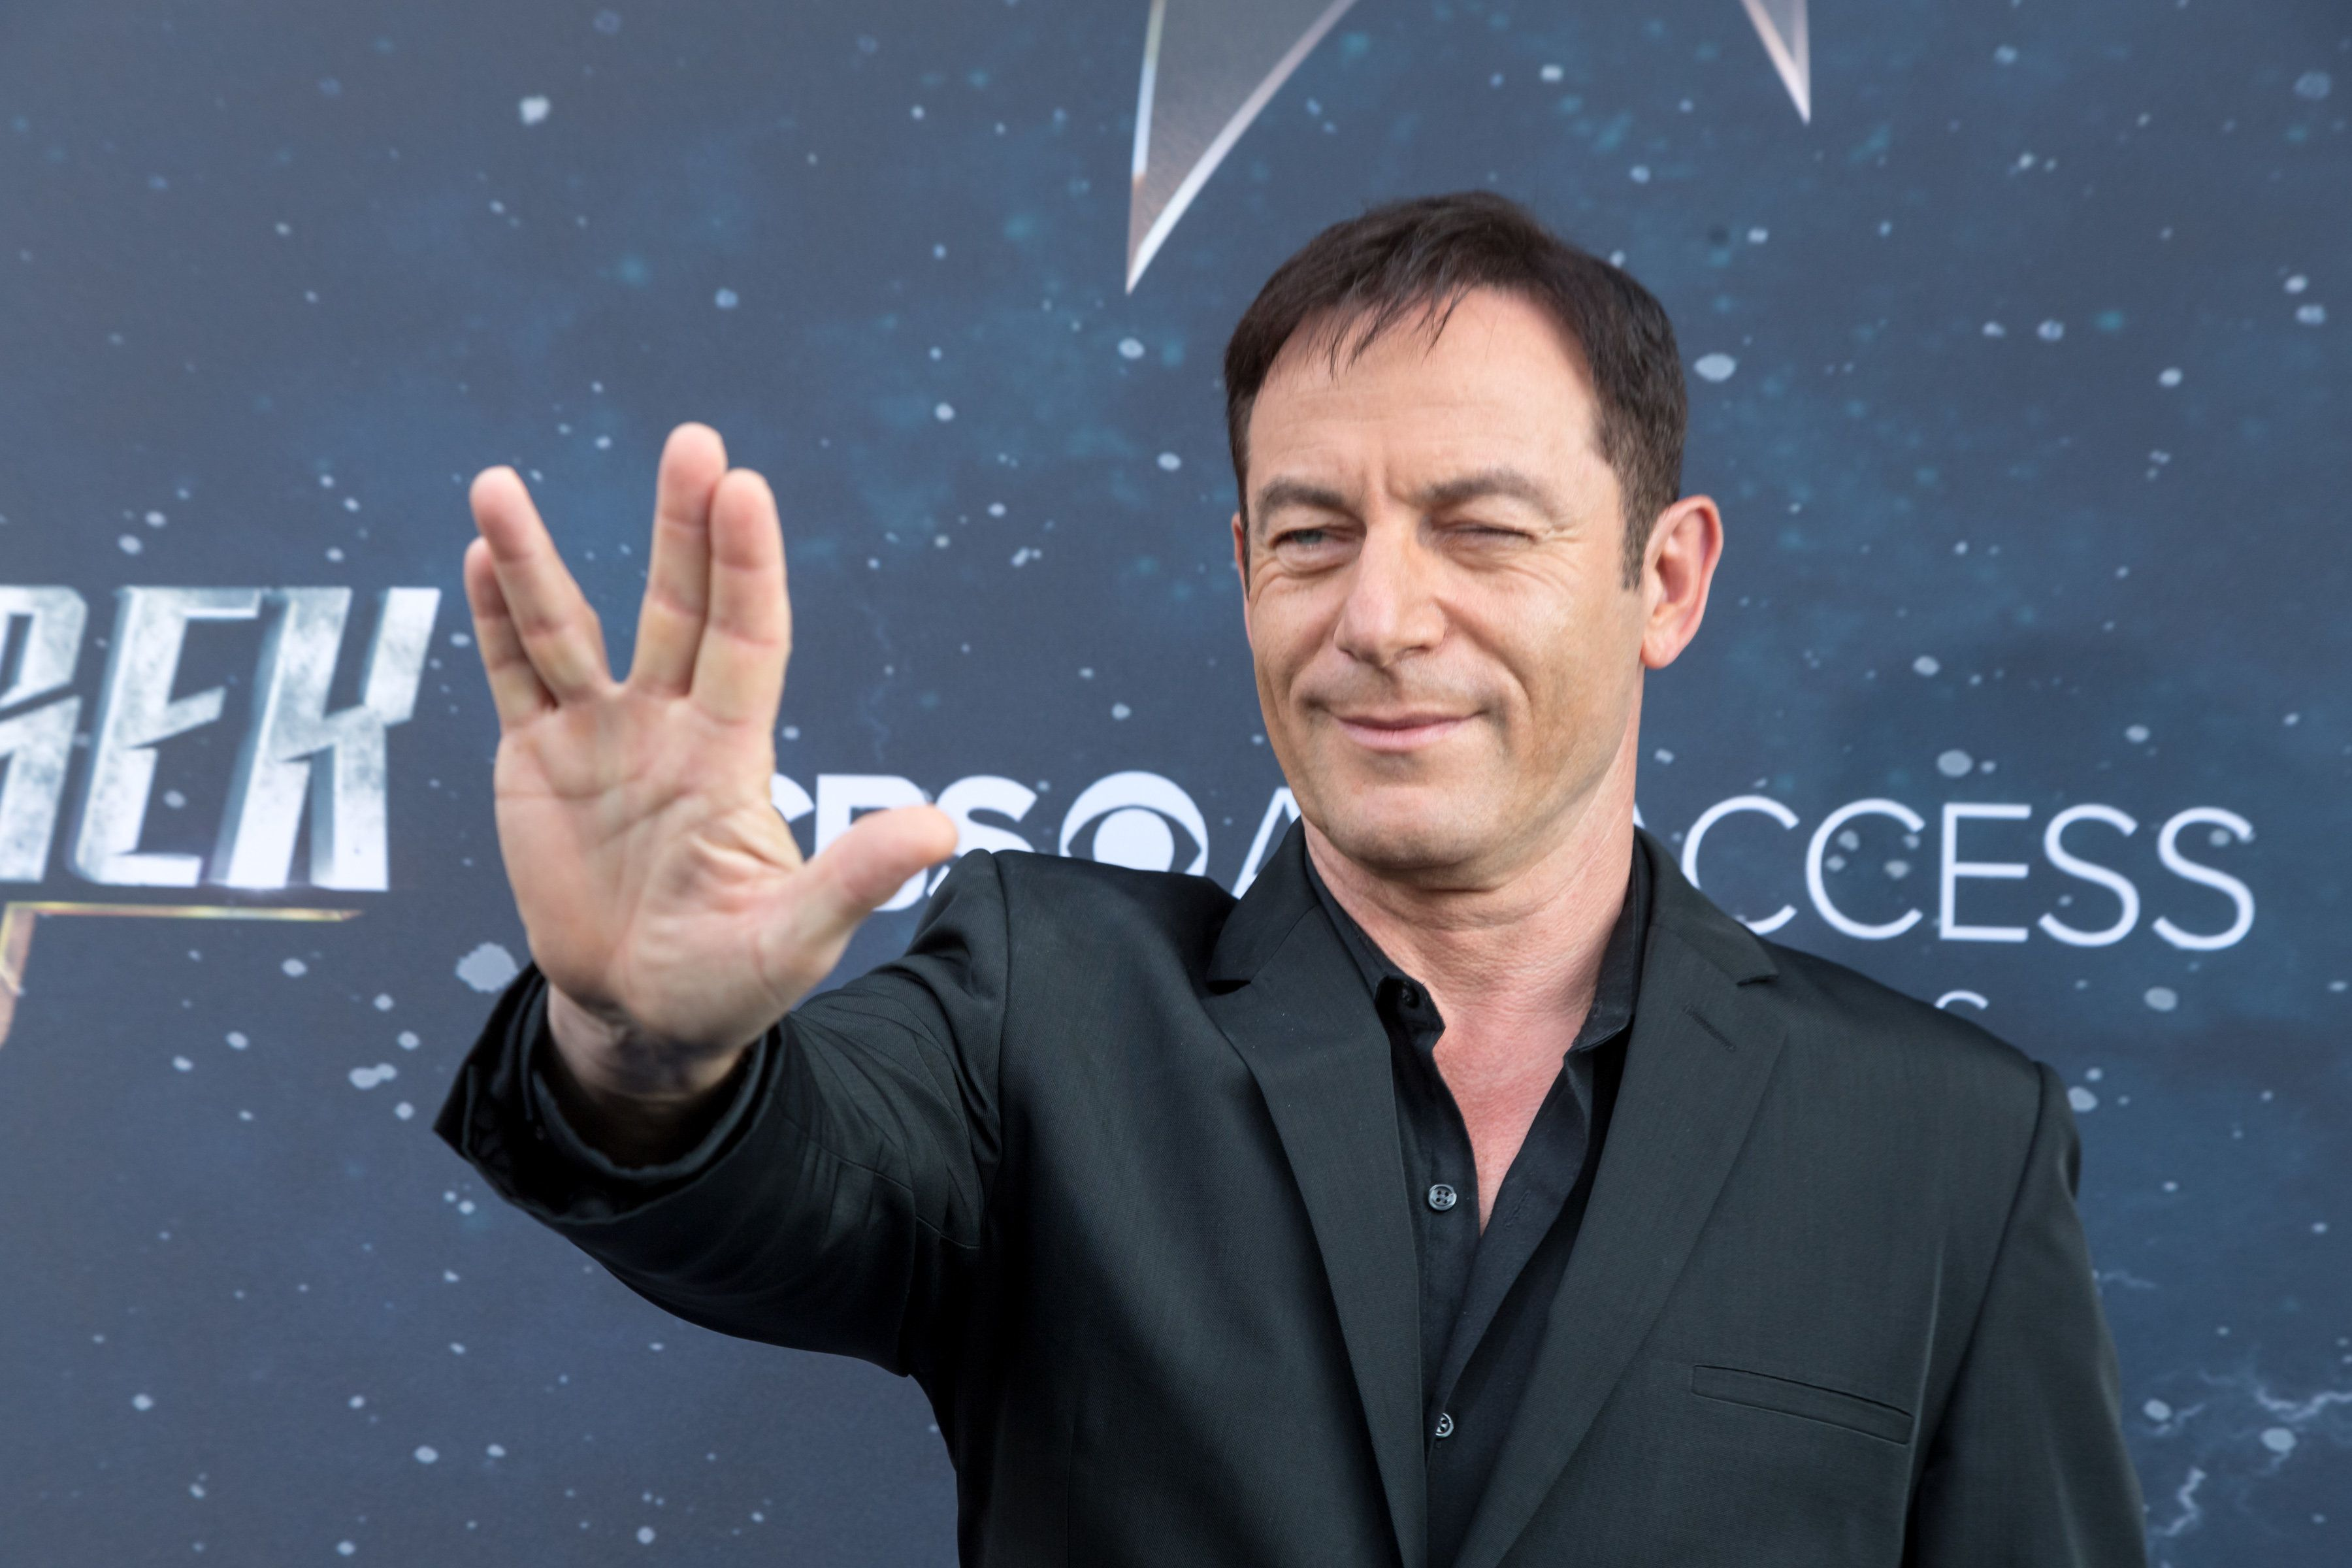 LOS ANGELES, CA - SEPTEMBER 19:  Actor Jason Isaacs arrives for the Premiere Of CBS's 'Star Trek: Discovery' at The Cinerama Dome on September 19, 2017 in Los Angeles, California.  (Photo by Greg Doherty/Patrick McMullan via Getty Images)